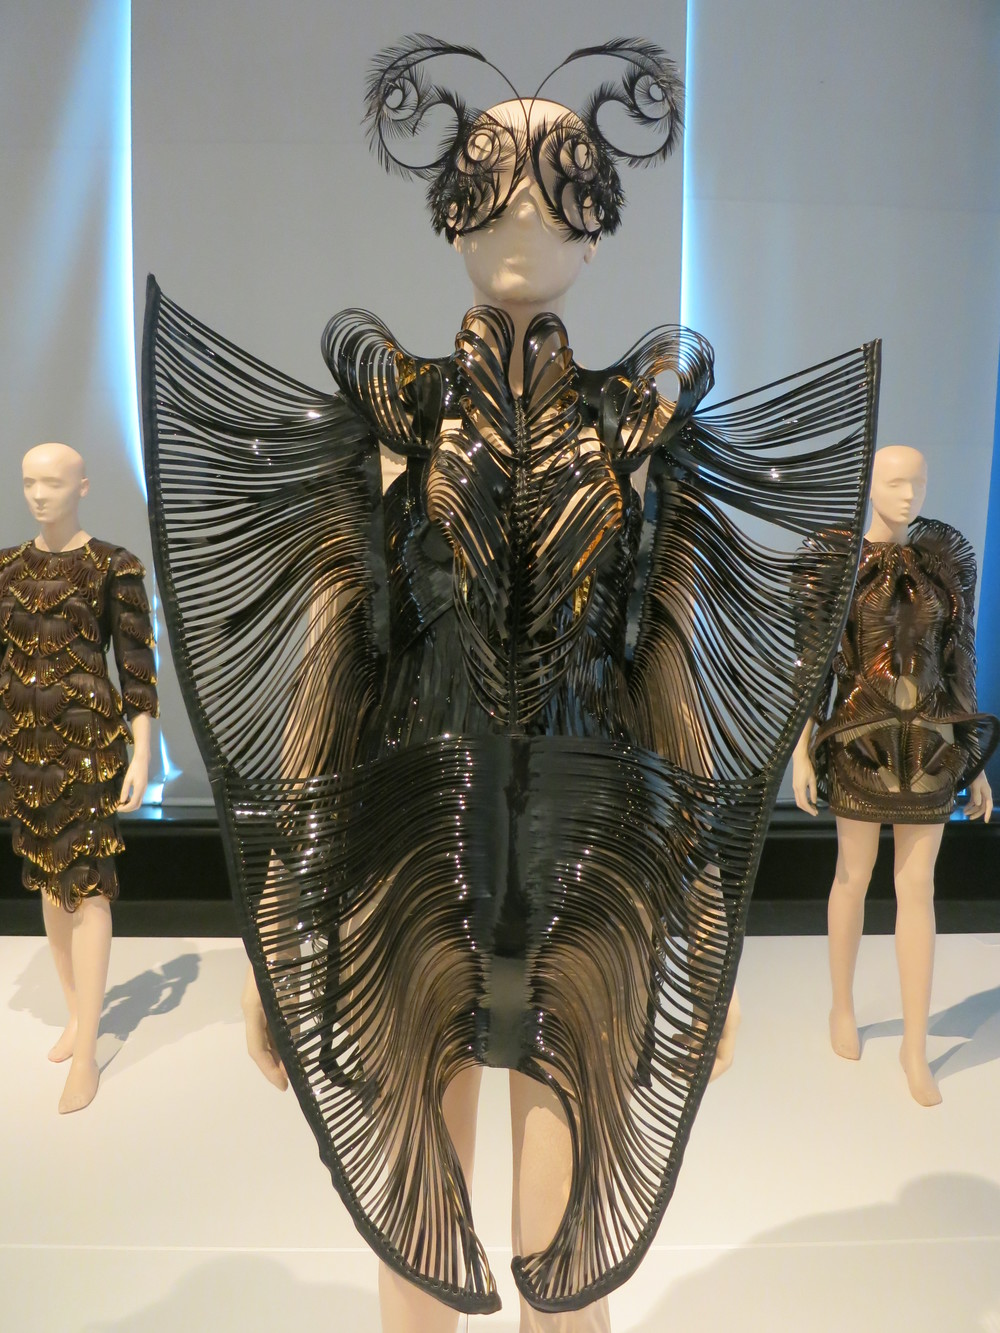 Iris van Herpen exhibition at the Calais Lace Museum 2013 - 'SYNESTHESIA' 2010